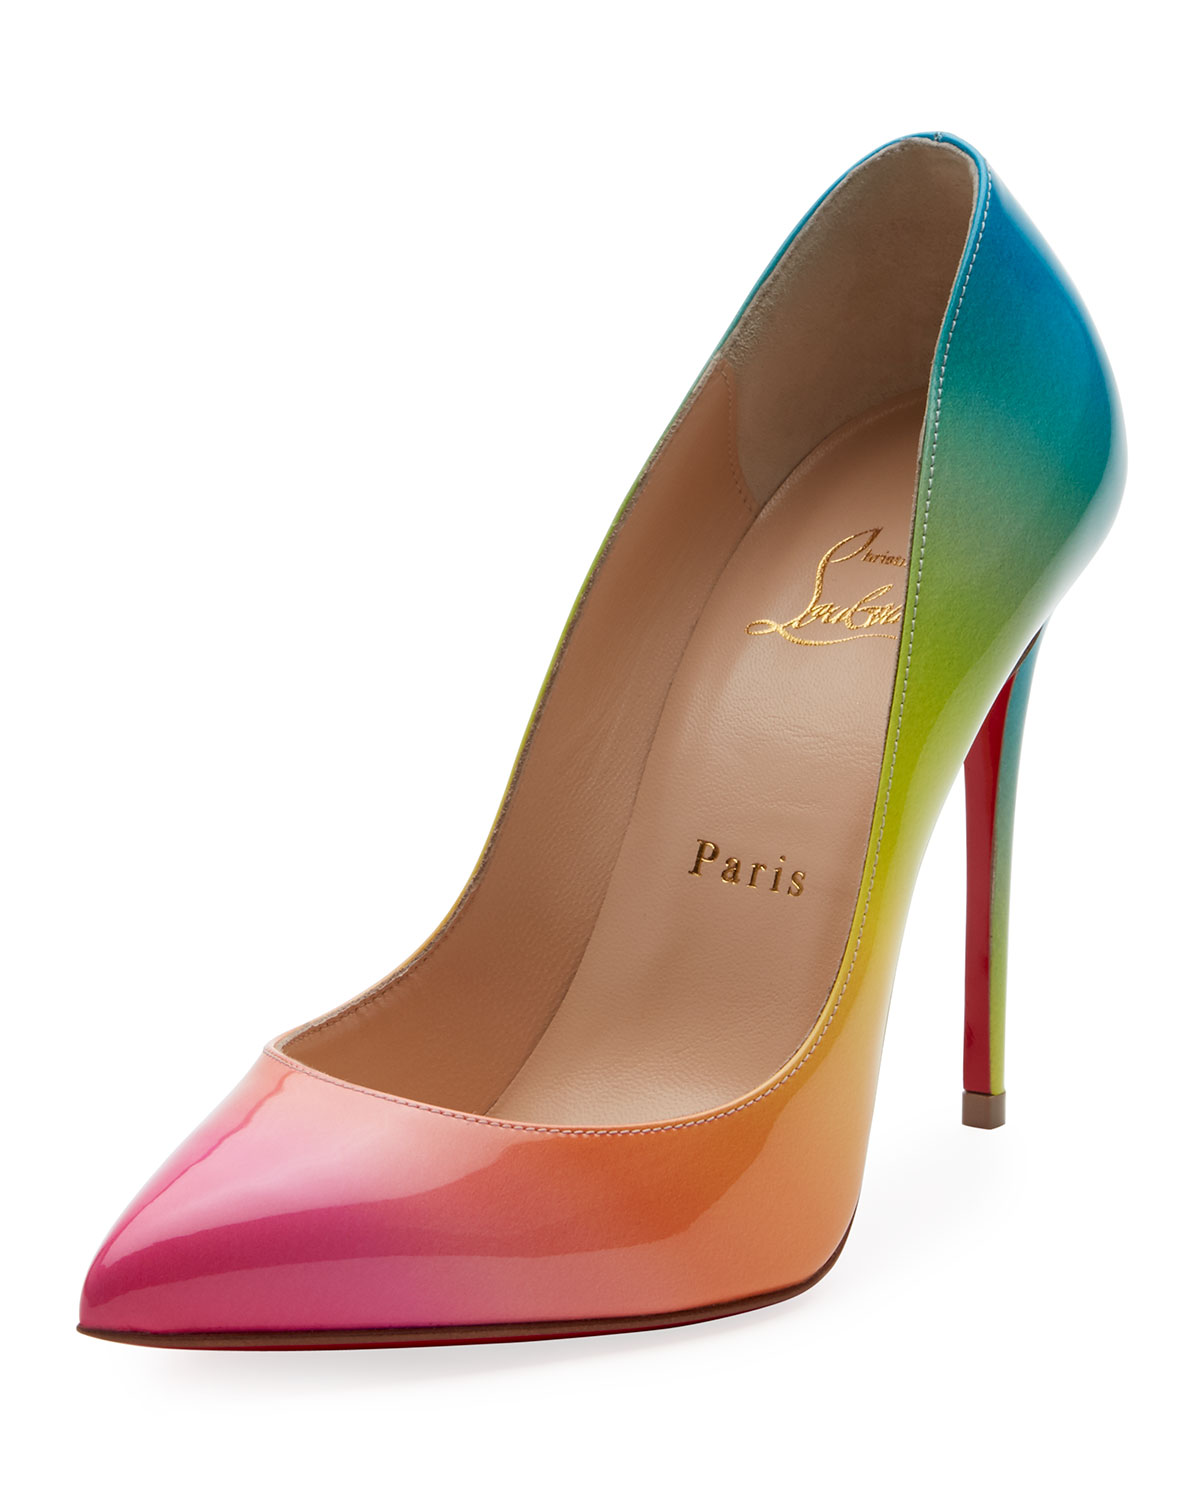 CHRISTIAN LOUBOUTIN Pigalle Follies 100Mm Ombre Patent Red Sole Pump, Multi